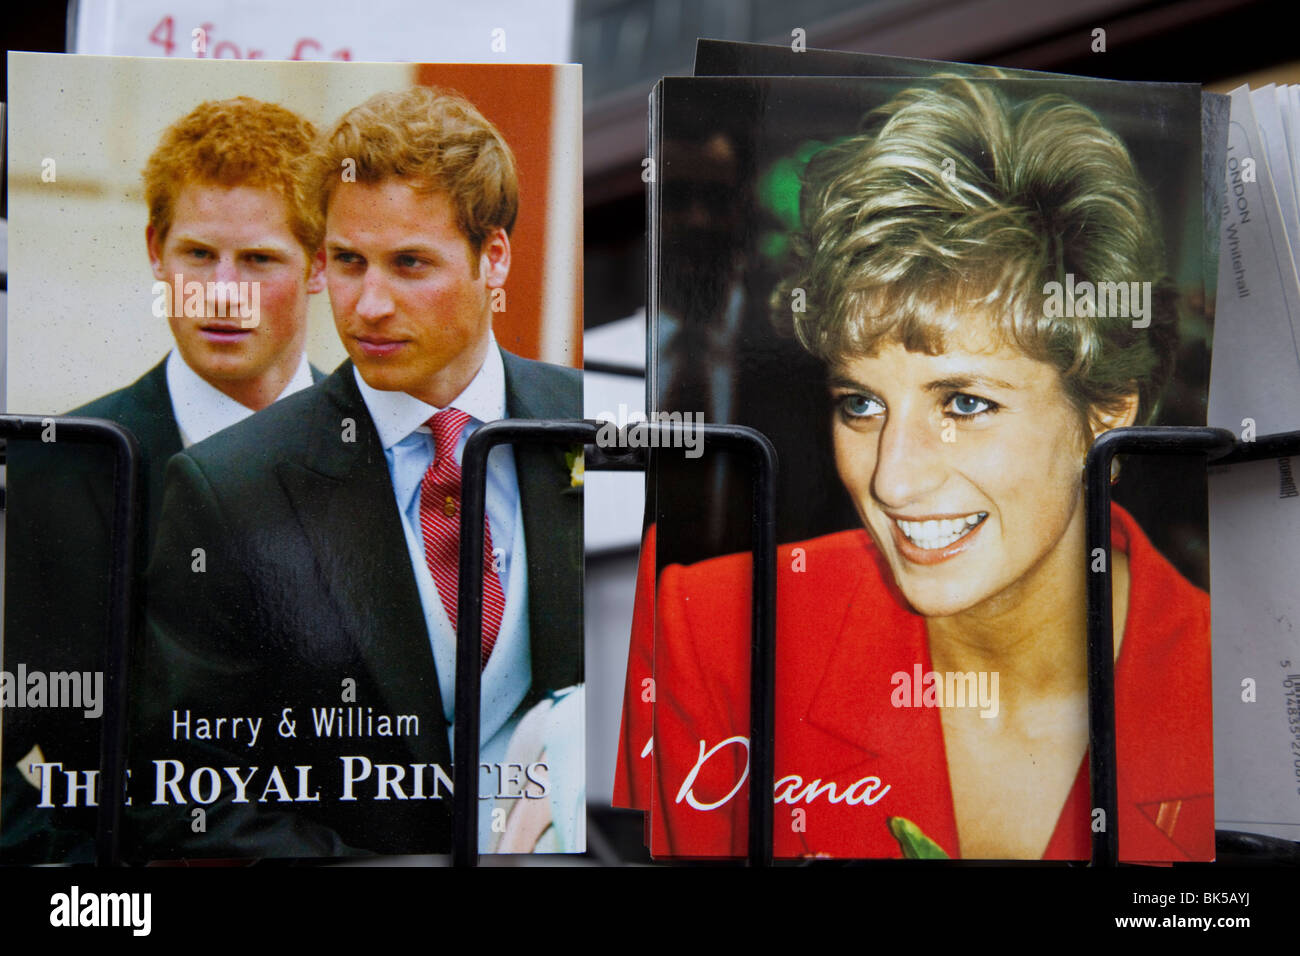 Postcards of Princess Diana and the two Princes Harry and William for sale at a souvenir shop in London. - Stock Image